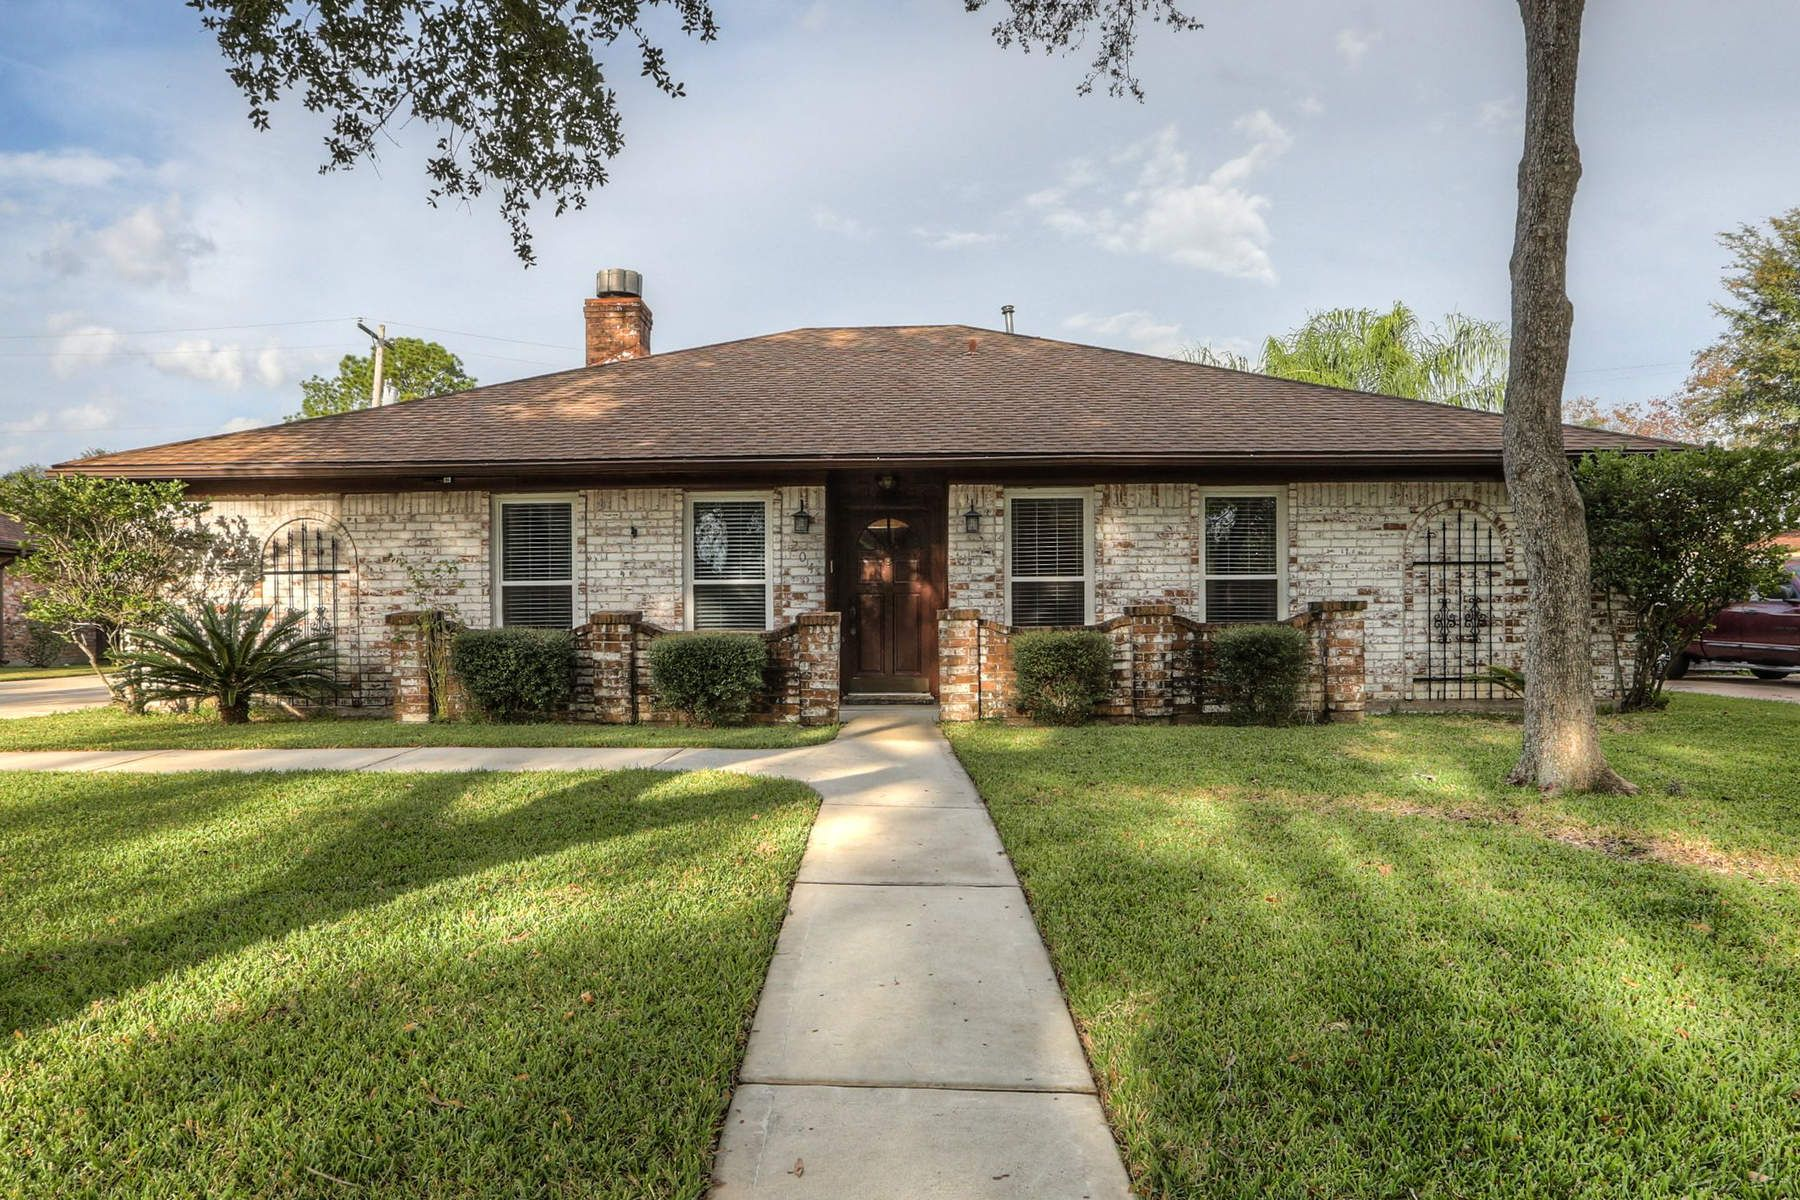 Single Family Home for Sale at 204 Williamsport Street 204 Williamsport Street League City, Texas 77573 United States